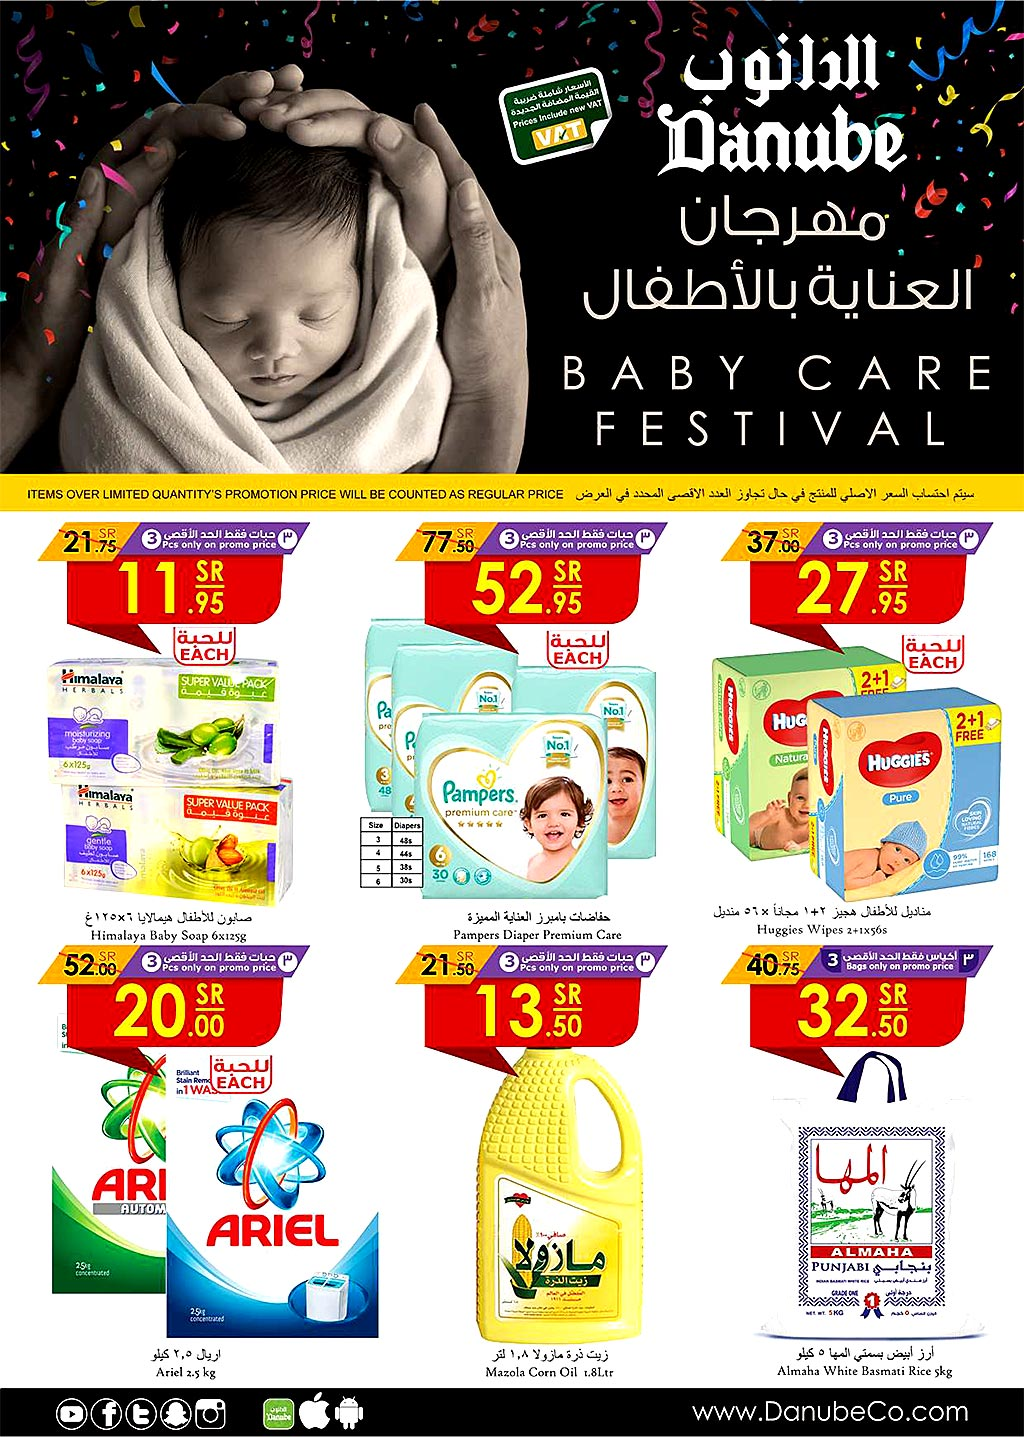 danube offers from 16sep to 21sep 2020 page number 1 عروض الدانوب من 16 سبتمبر حتى 21 سبتمبر 2020 صفحة رقم 1